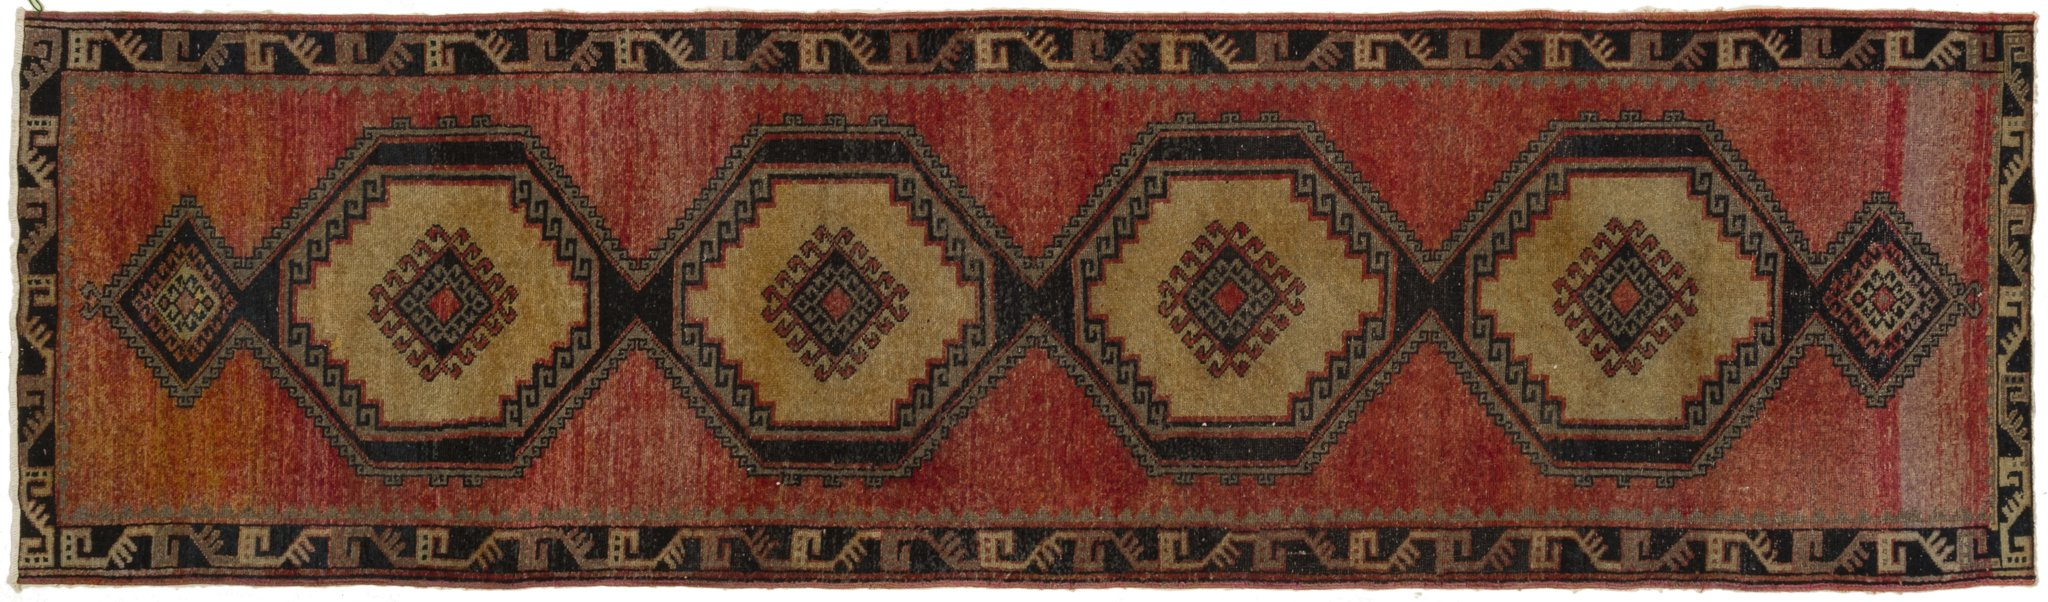 Vintage Turkish Runner Rug Annaleena